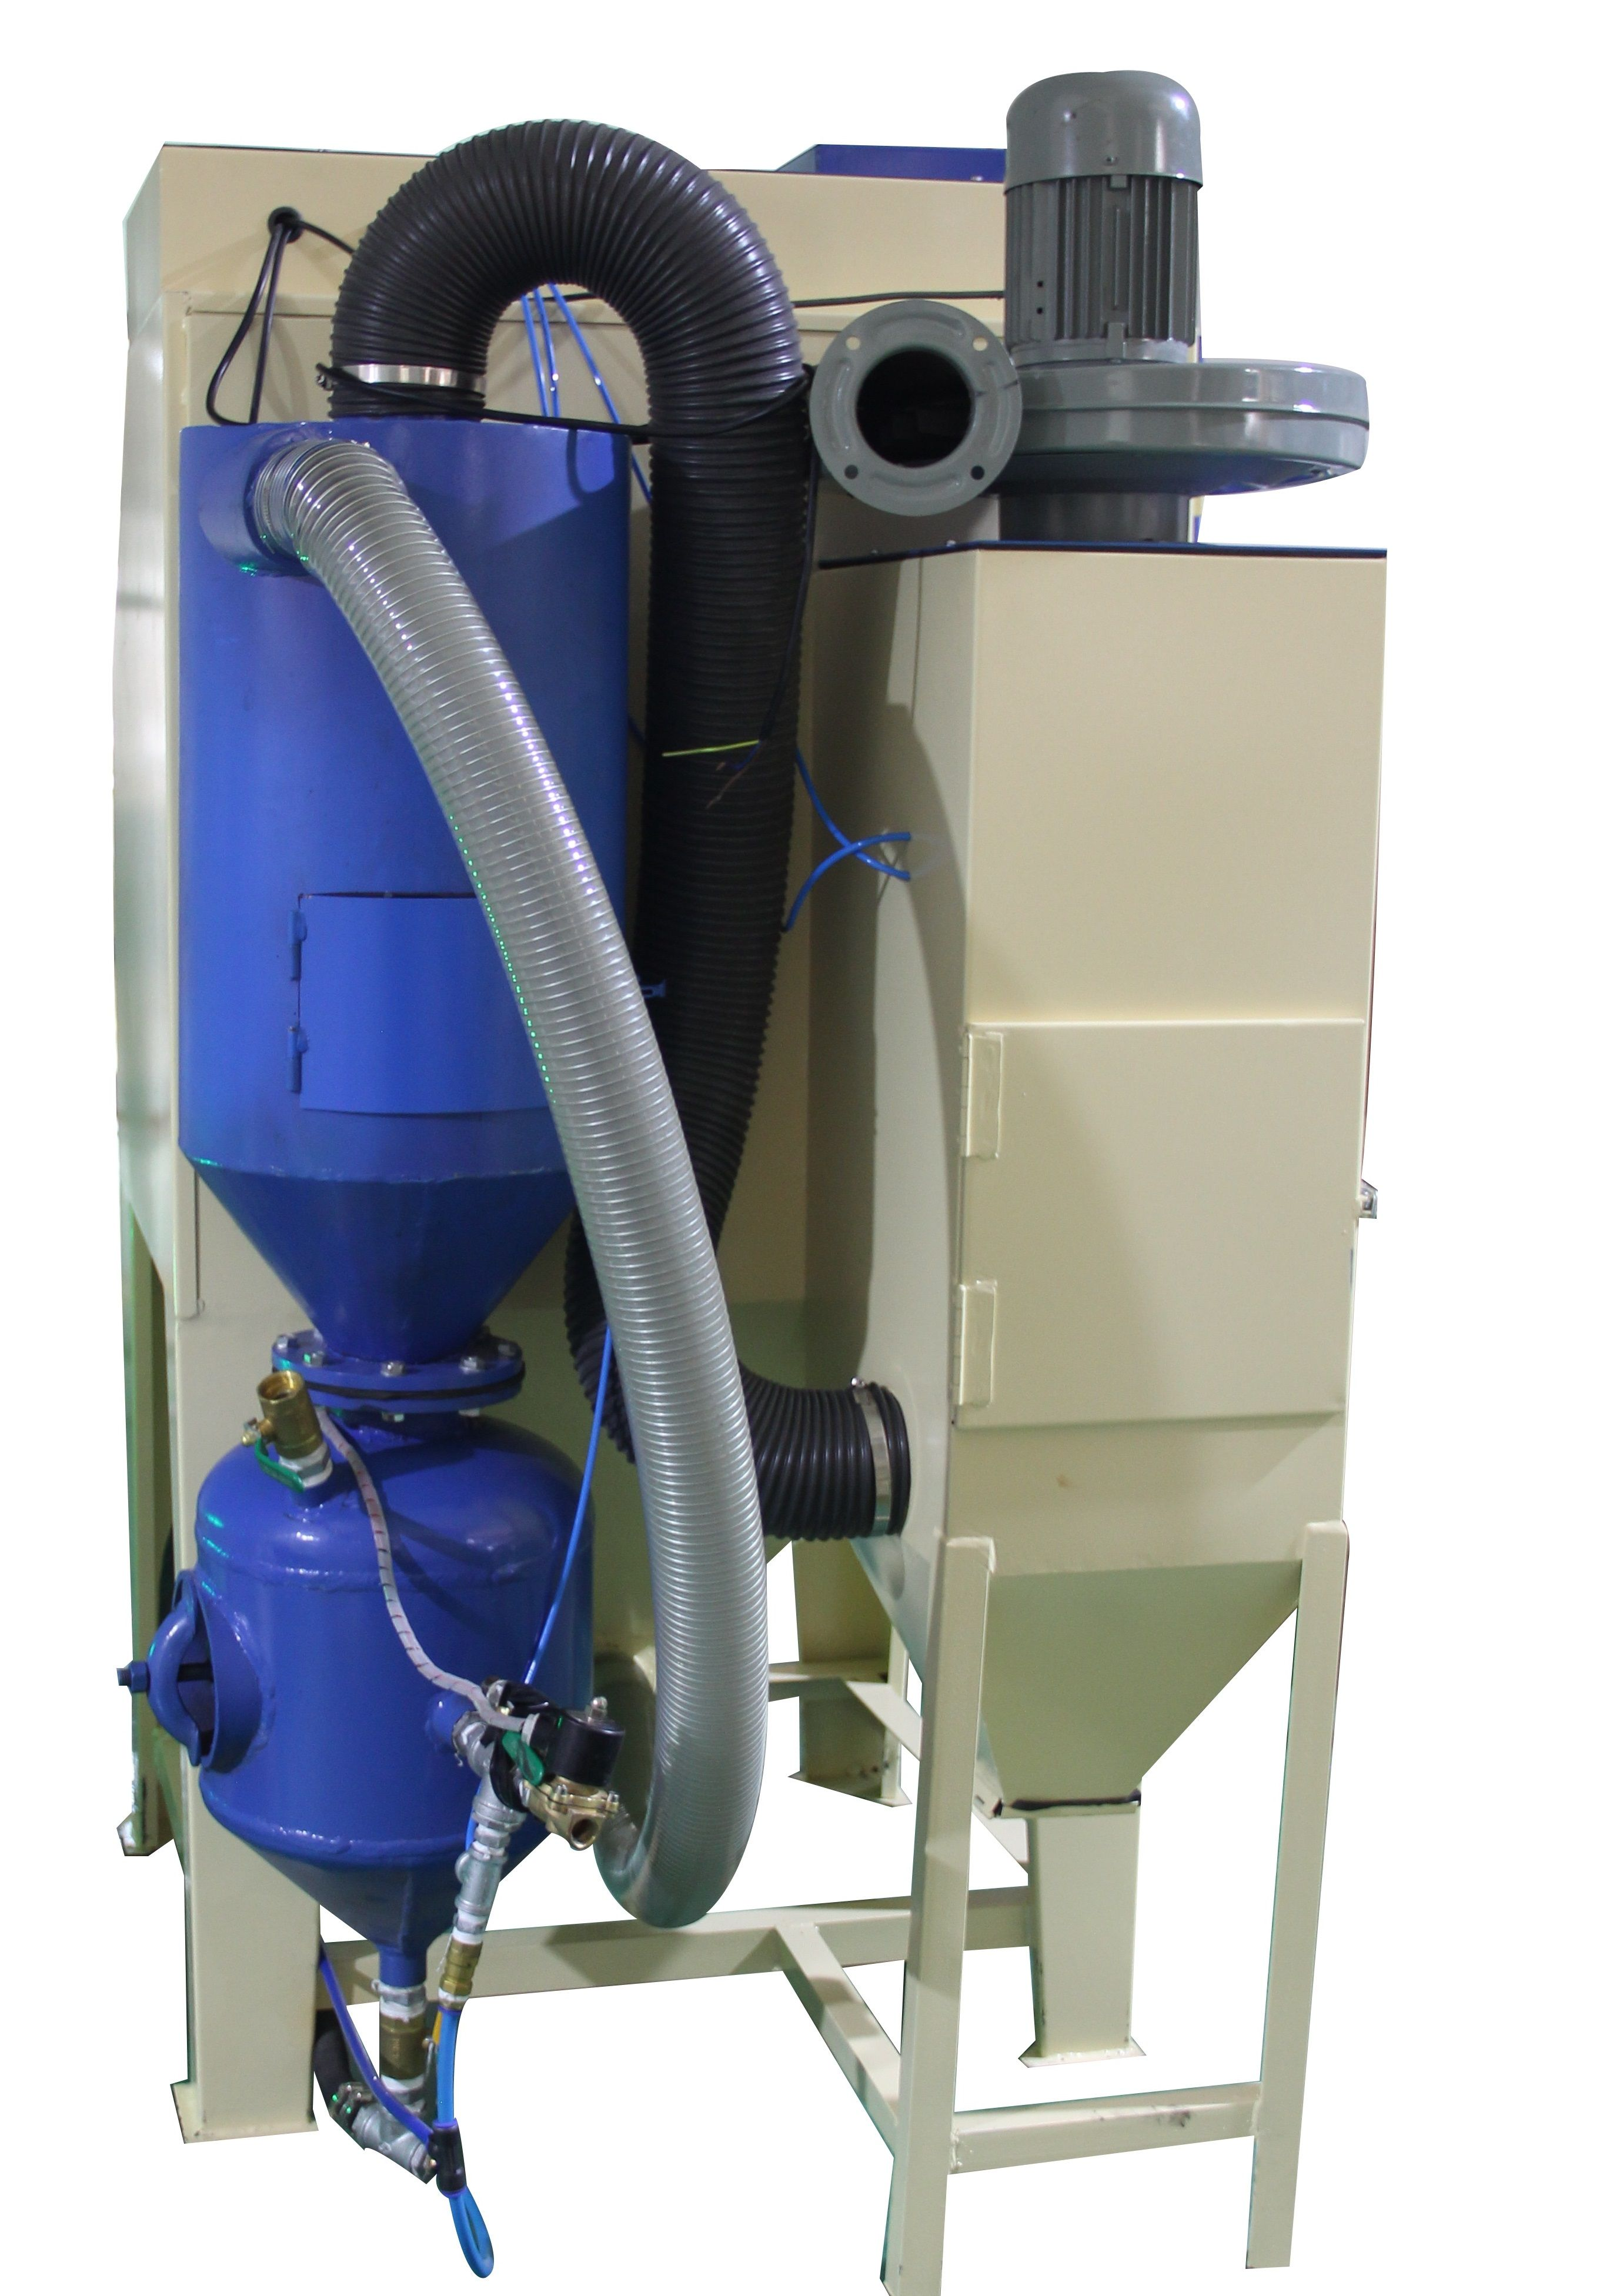 The Cyclone System Of Sandblaster Will Effectively Separating Stone Fuel Filters Abrasives And Rust Enables Cartridge Filter Device Only Collect Dust